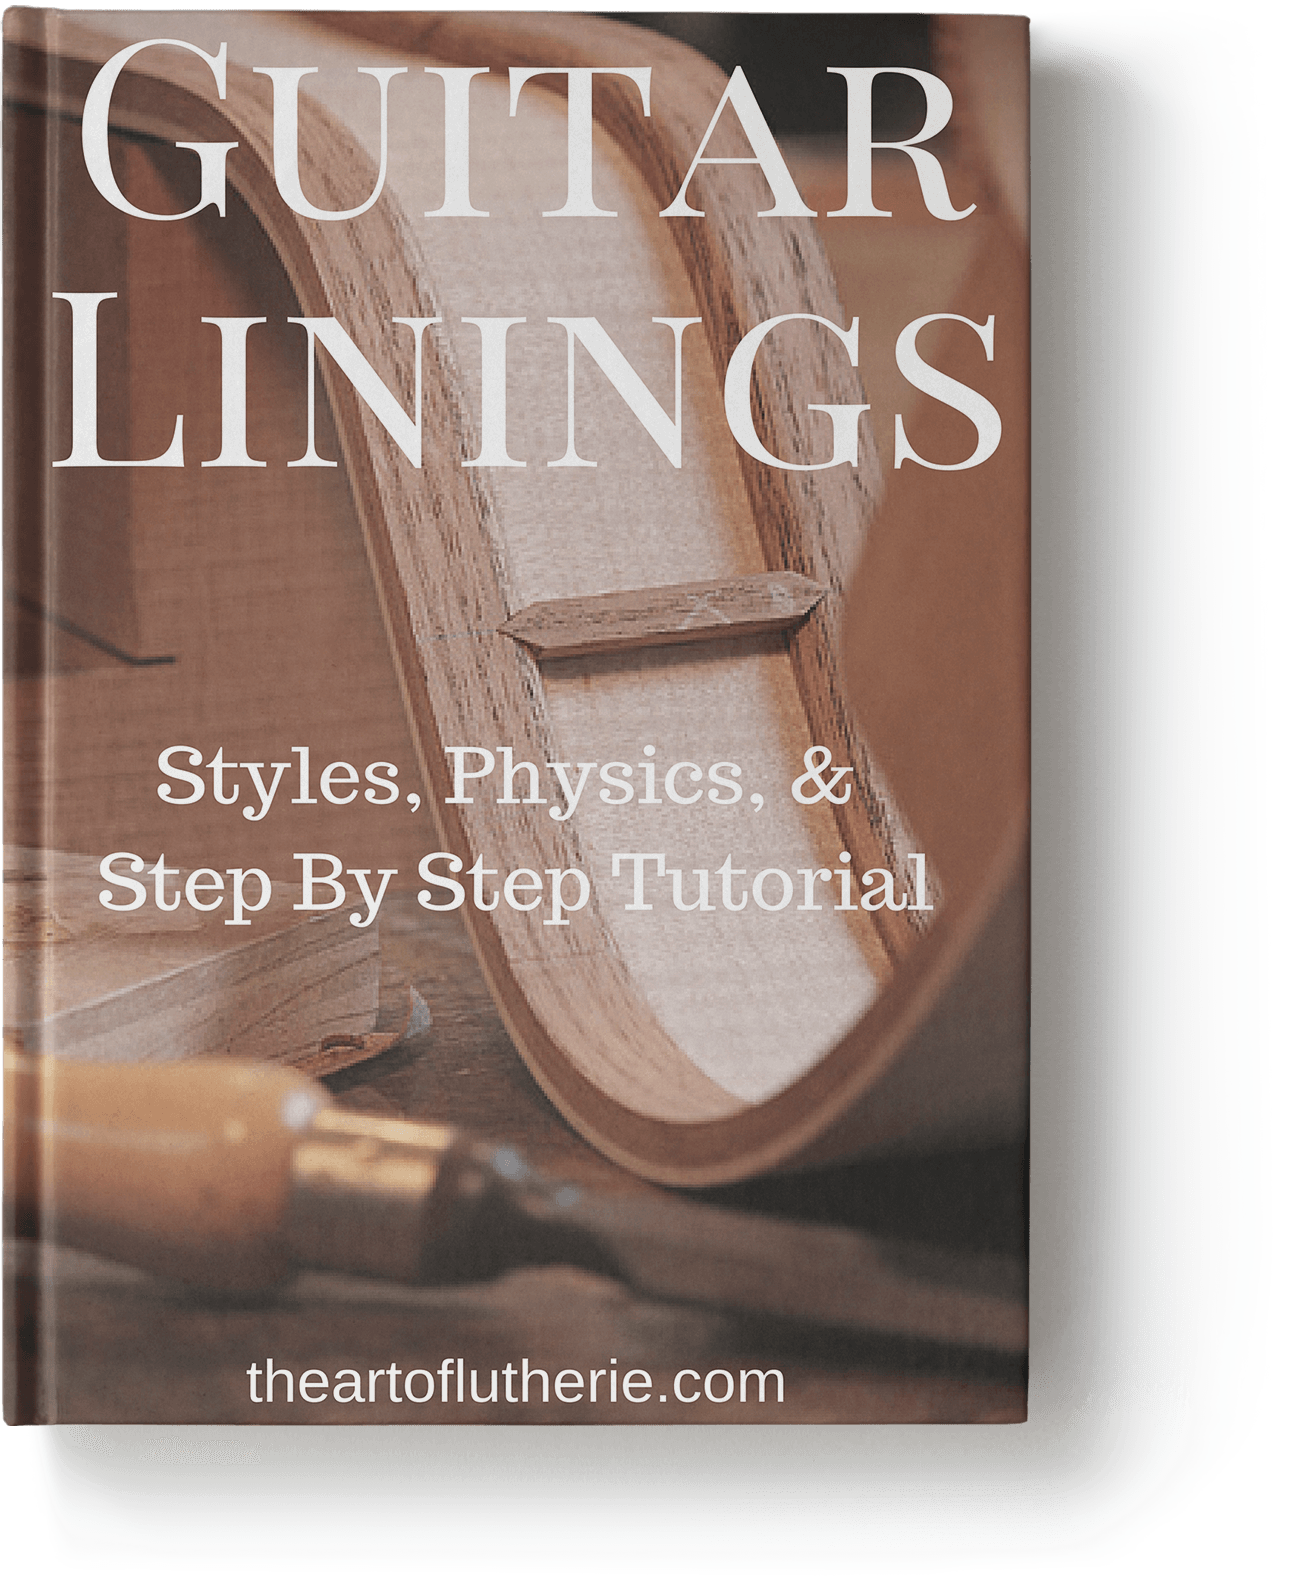 Guitar Linings Book Cover